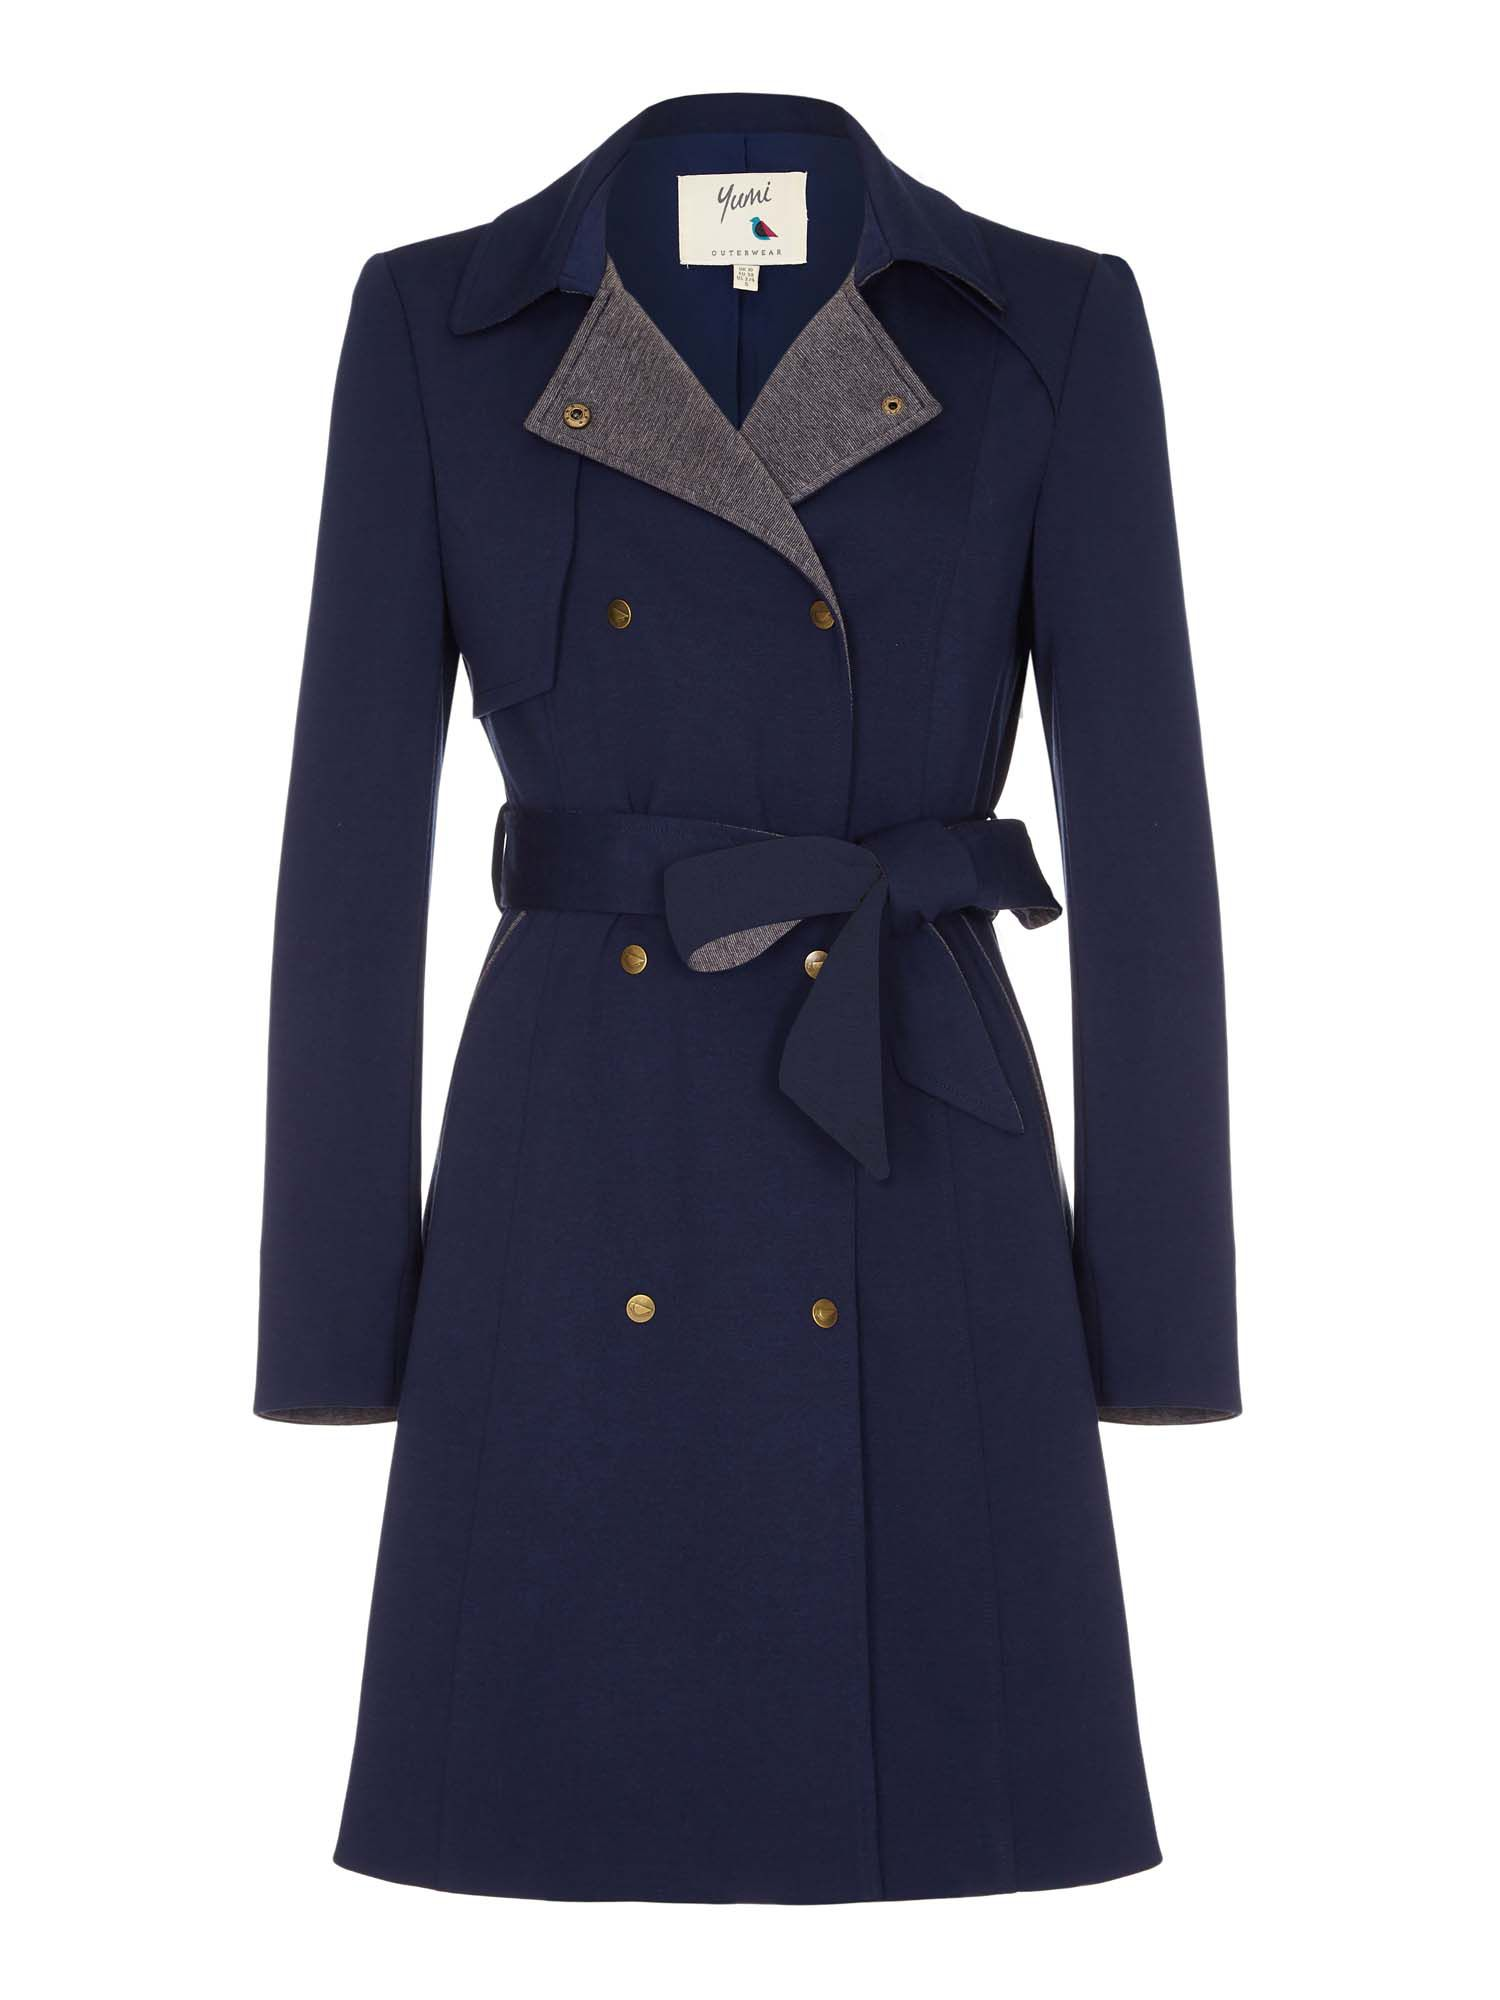 Retro Vintage Style Coats, Jackets, Fur Stoles Yumi Swing Hem Trench Coat Blue £90.00 AT vintagedancer.com